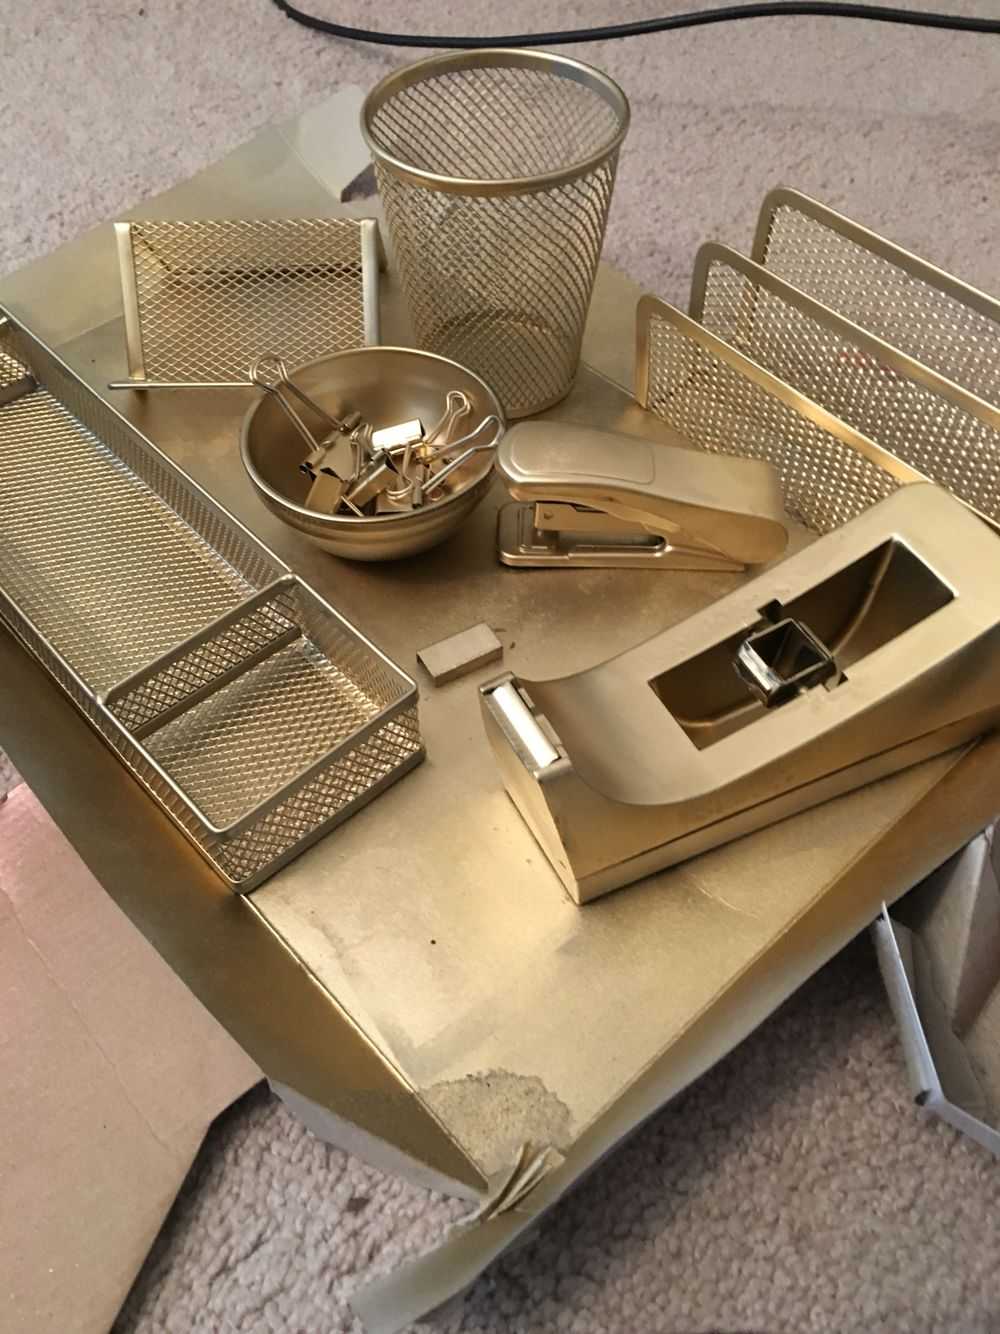 Gold Spray Paint Ideas Part - 17: Metallic Gold Spray Painted Office Supplies From Dollar Tree.